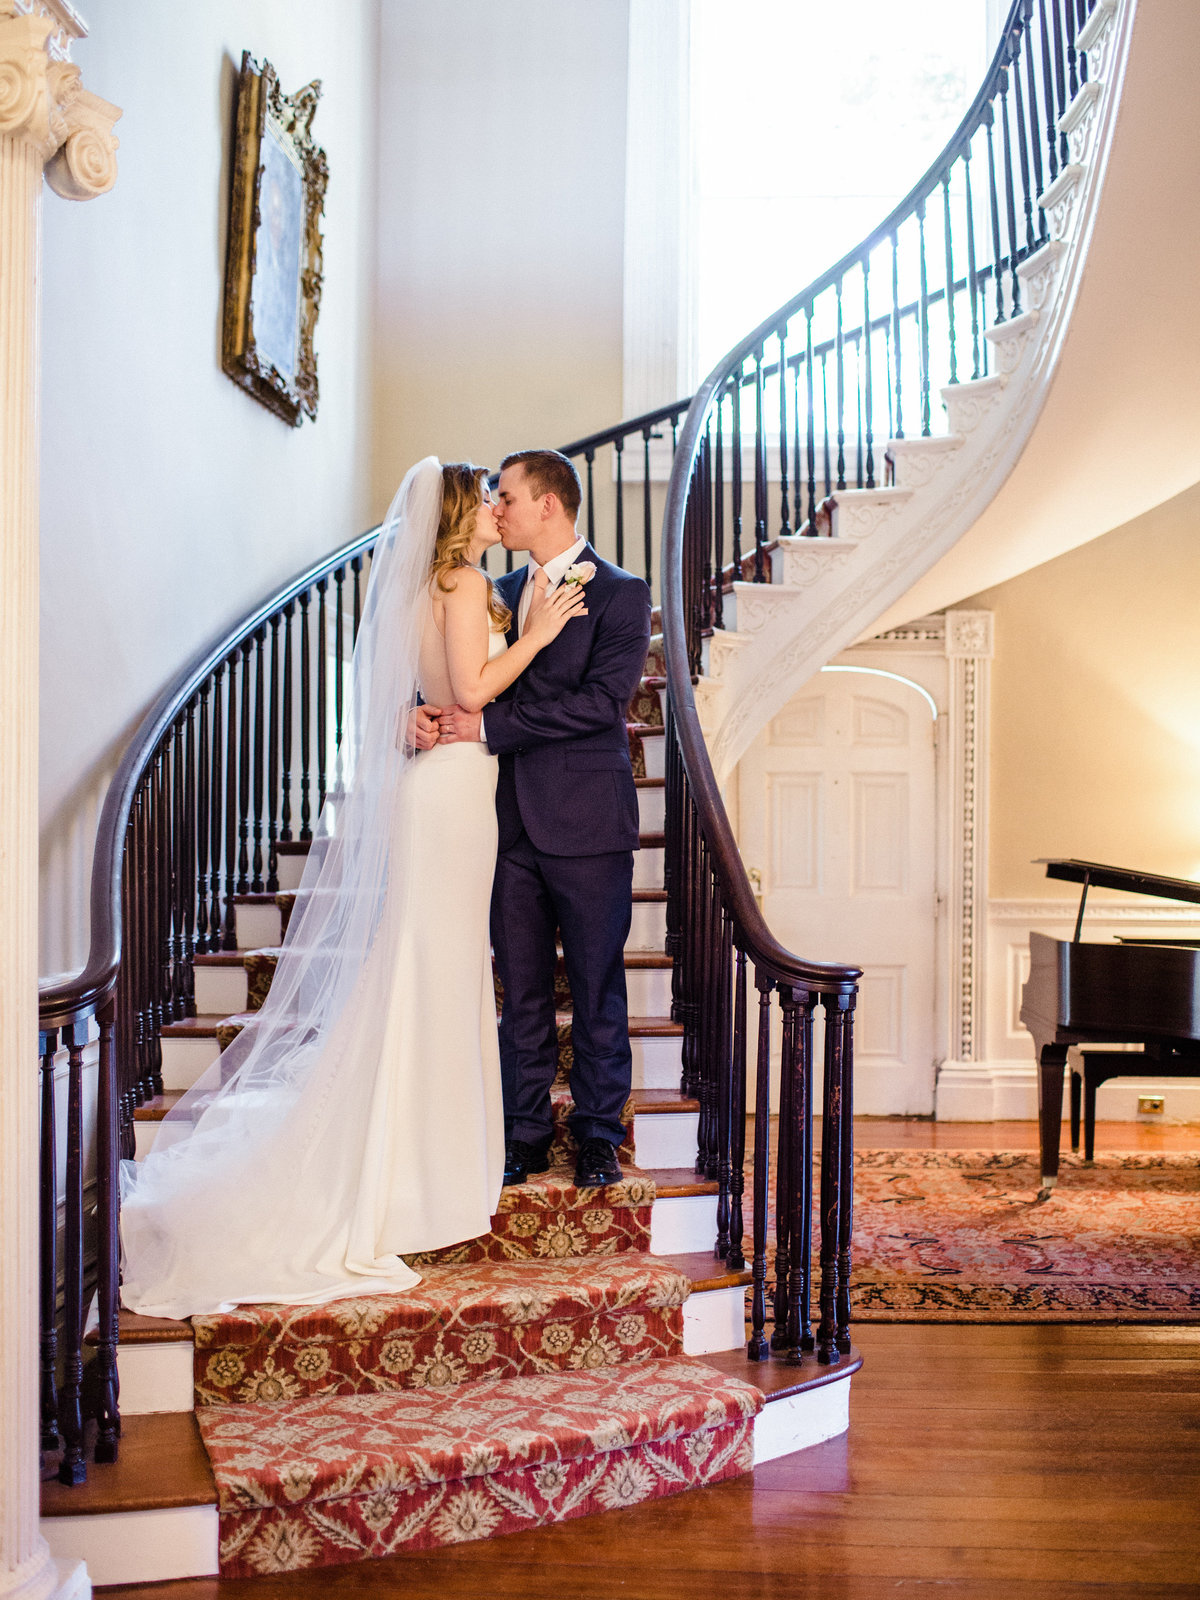 wedding-venues-in-charleston-governor-thomas-bennett-house-philip-casey-02